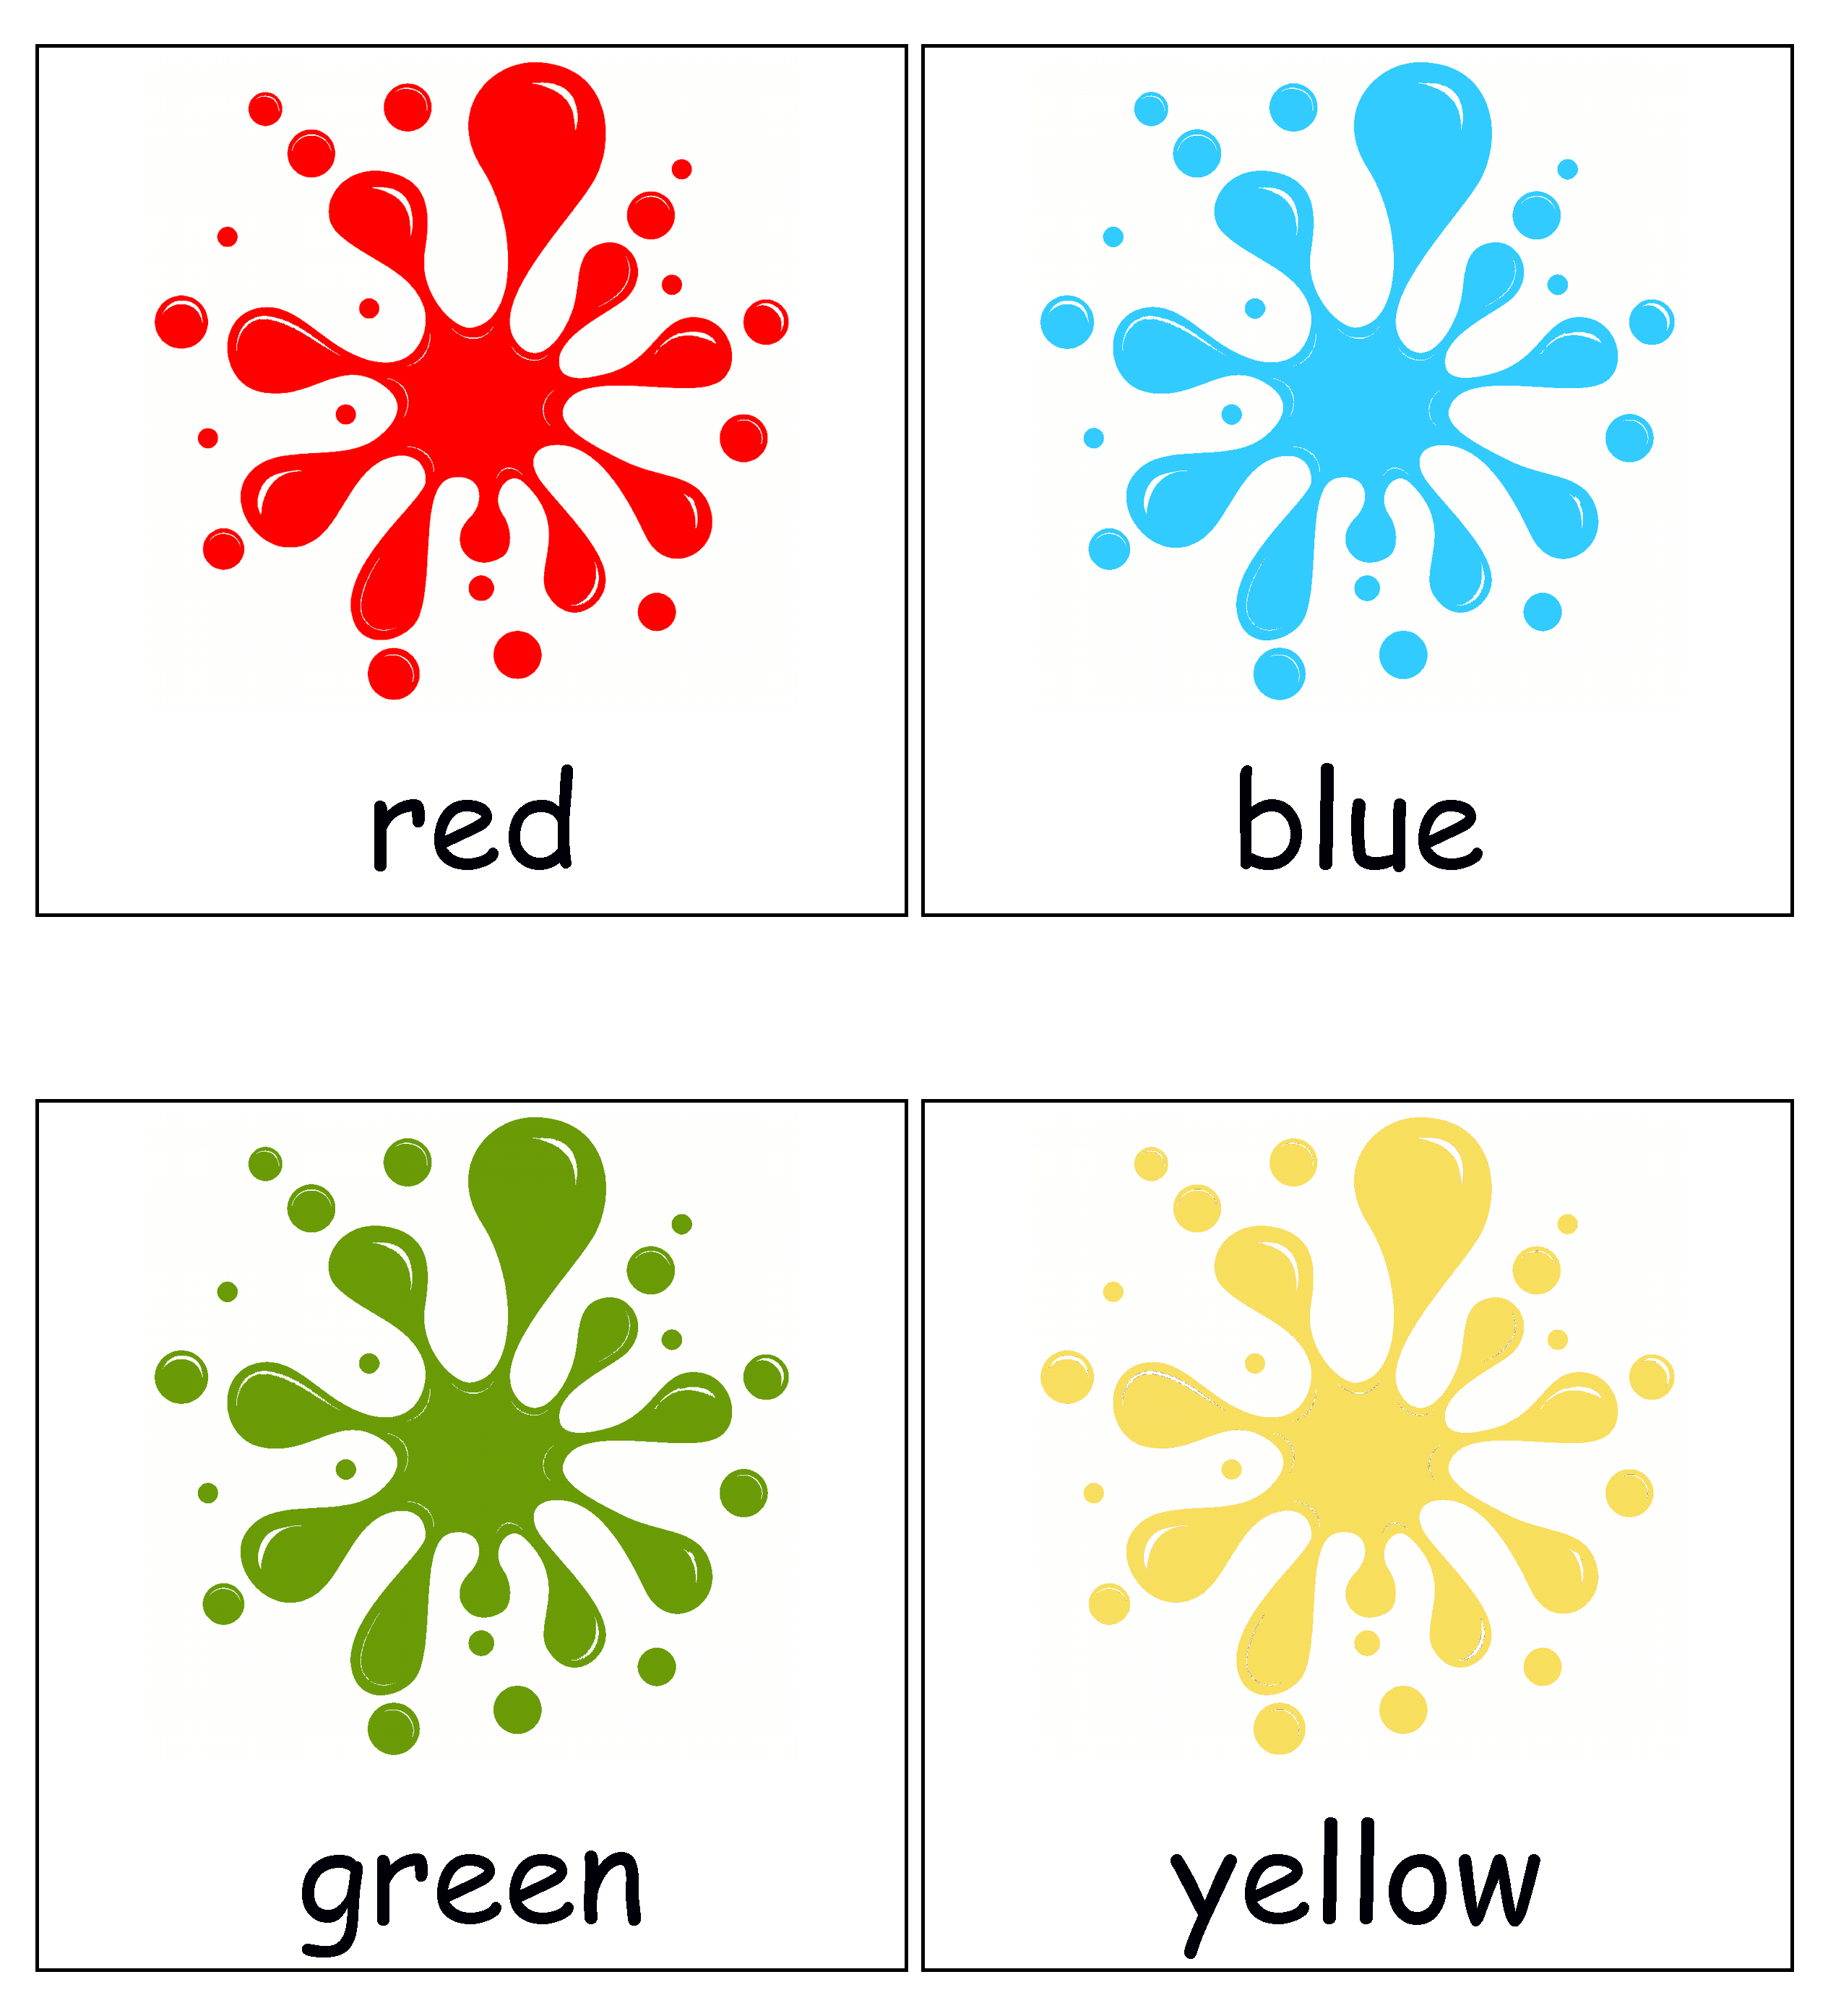 Printable For Toddlers And Preschoolers Printable Flash Cards Color Flashcards Alphabet Flash Cards Printable